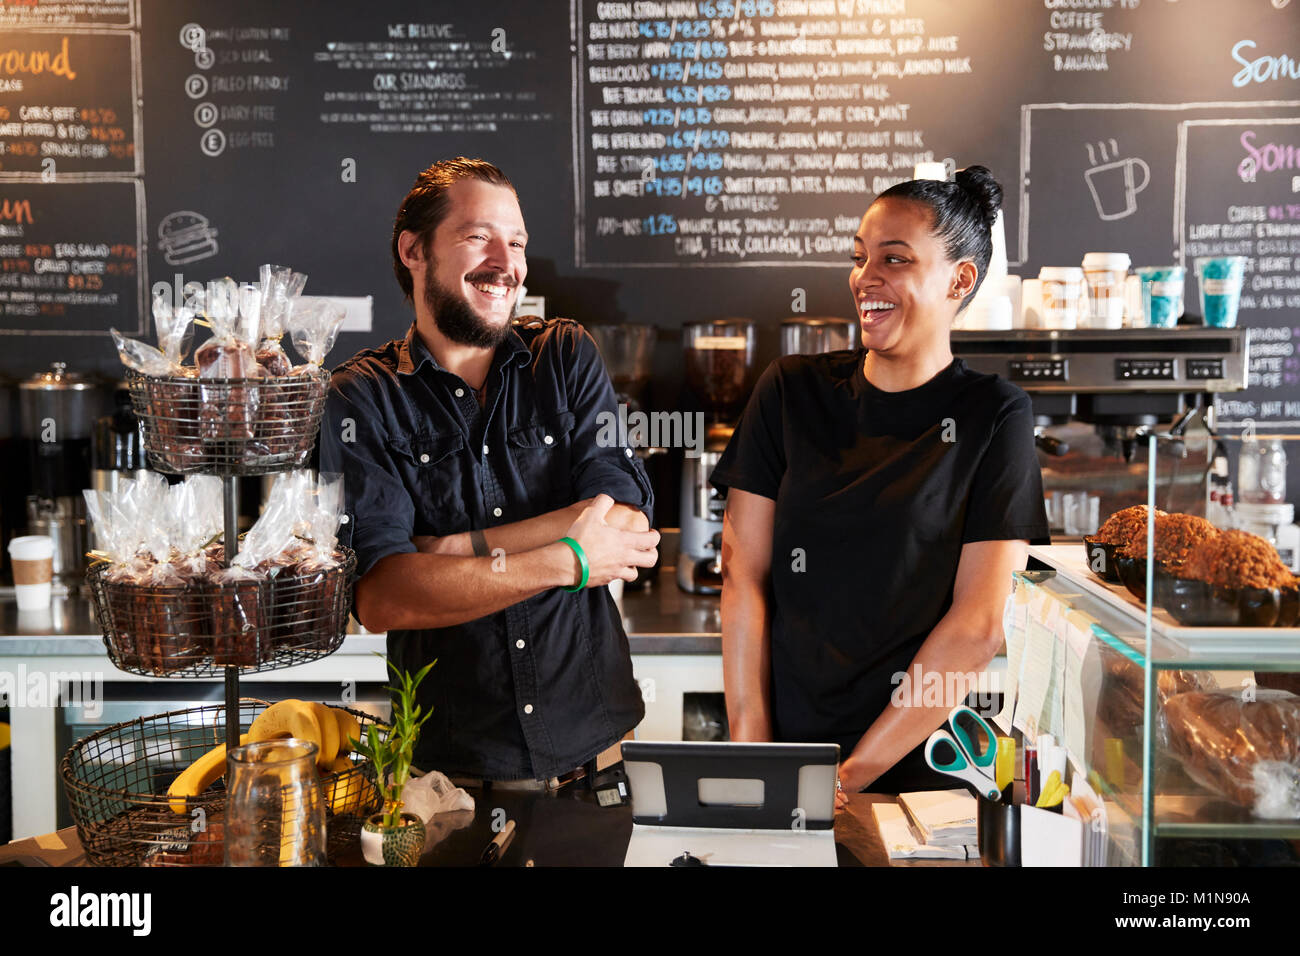 Male And Female Baristas Behind Counter In Coffee Shop - Stock Image